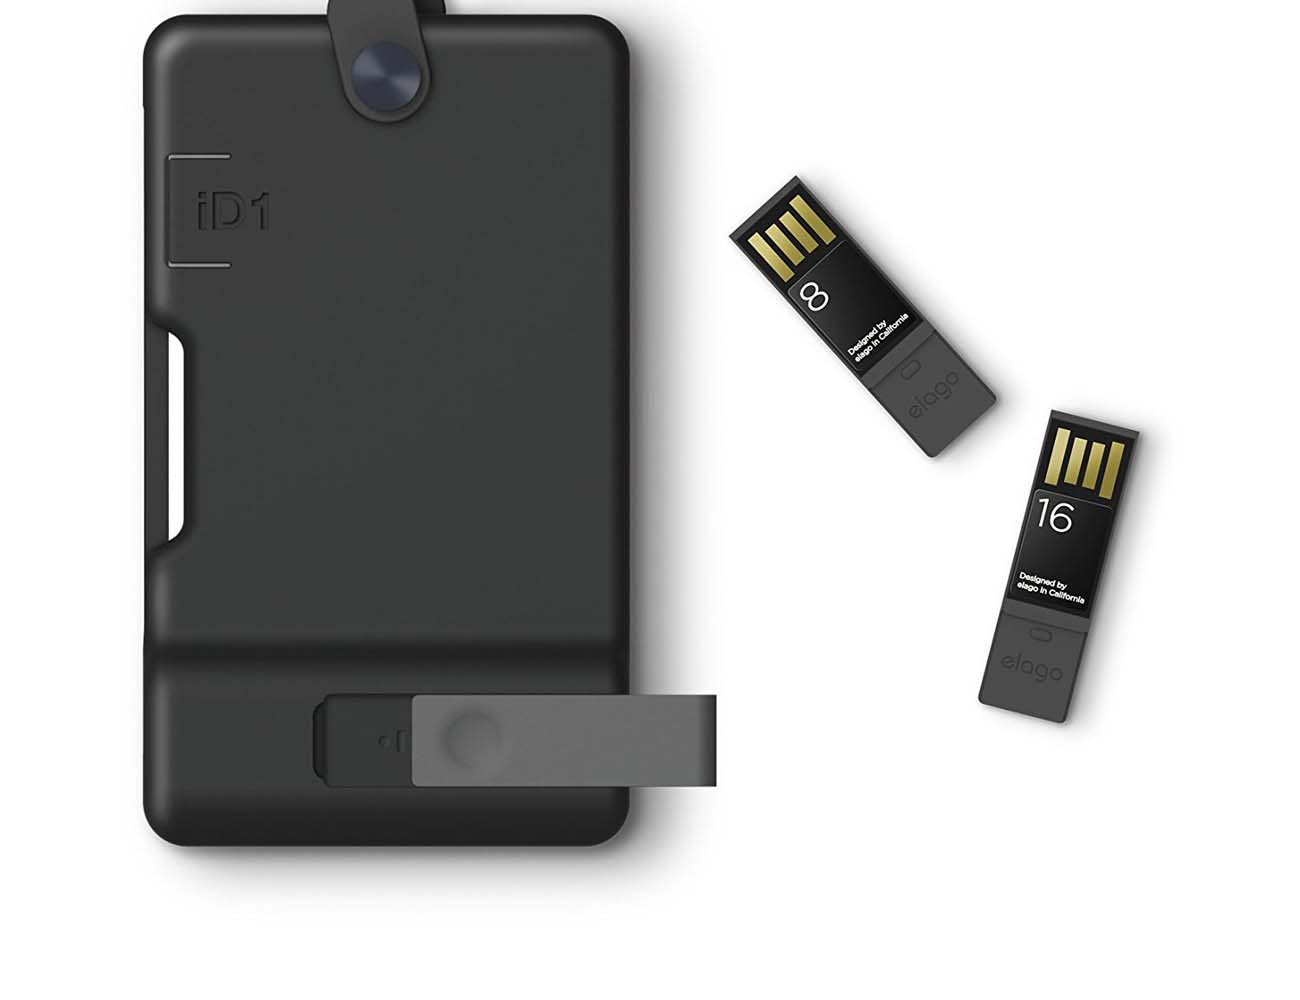 Elago ID1 USB ID Card Holder